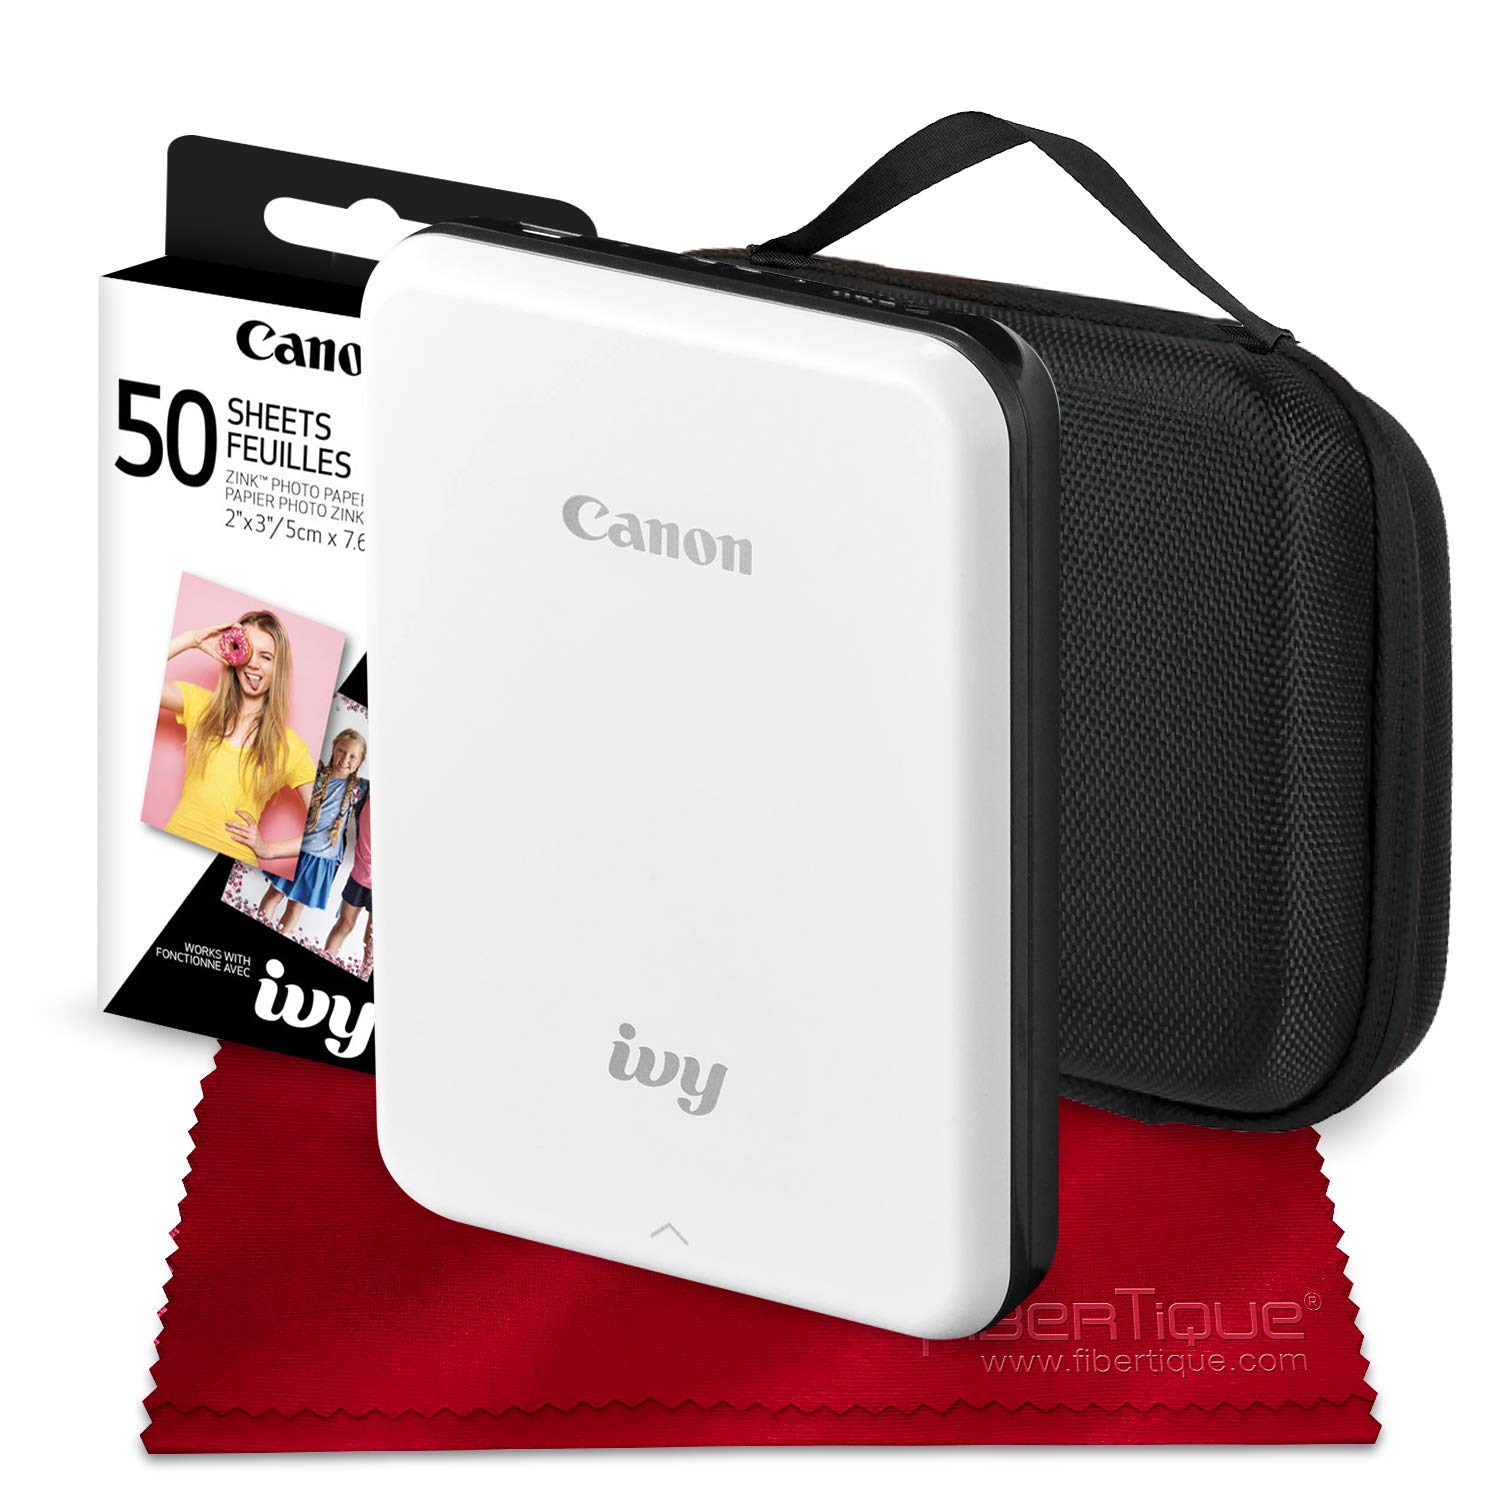 Canon Ivy Bluetooth Mini Mobile Photo Printer (Slate Gray) with Canon 2 x 3 Zink Photo Paper (50 Sheets) and Hard Shell Case Deluxe Bundle by Canon